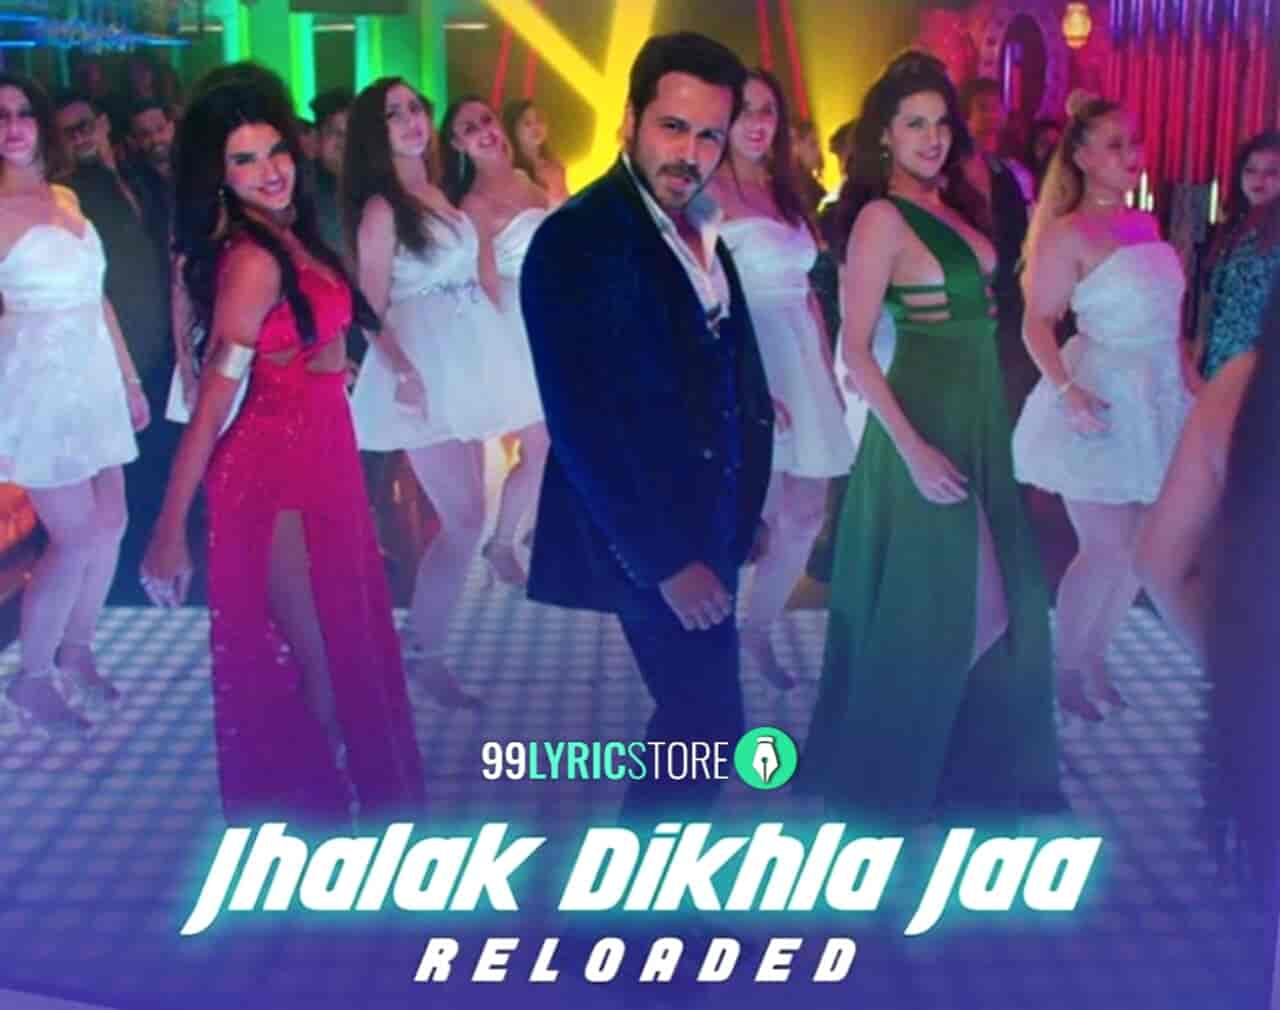 Jhalak Dikhla Ja Reloaded Song Images From Movie The Body